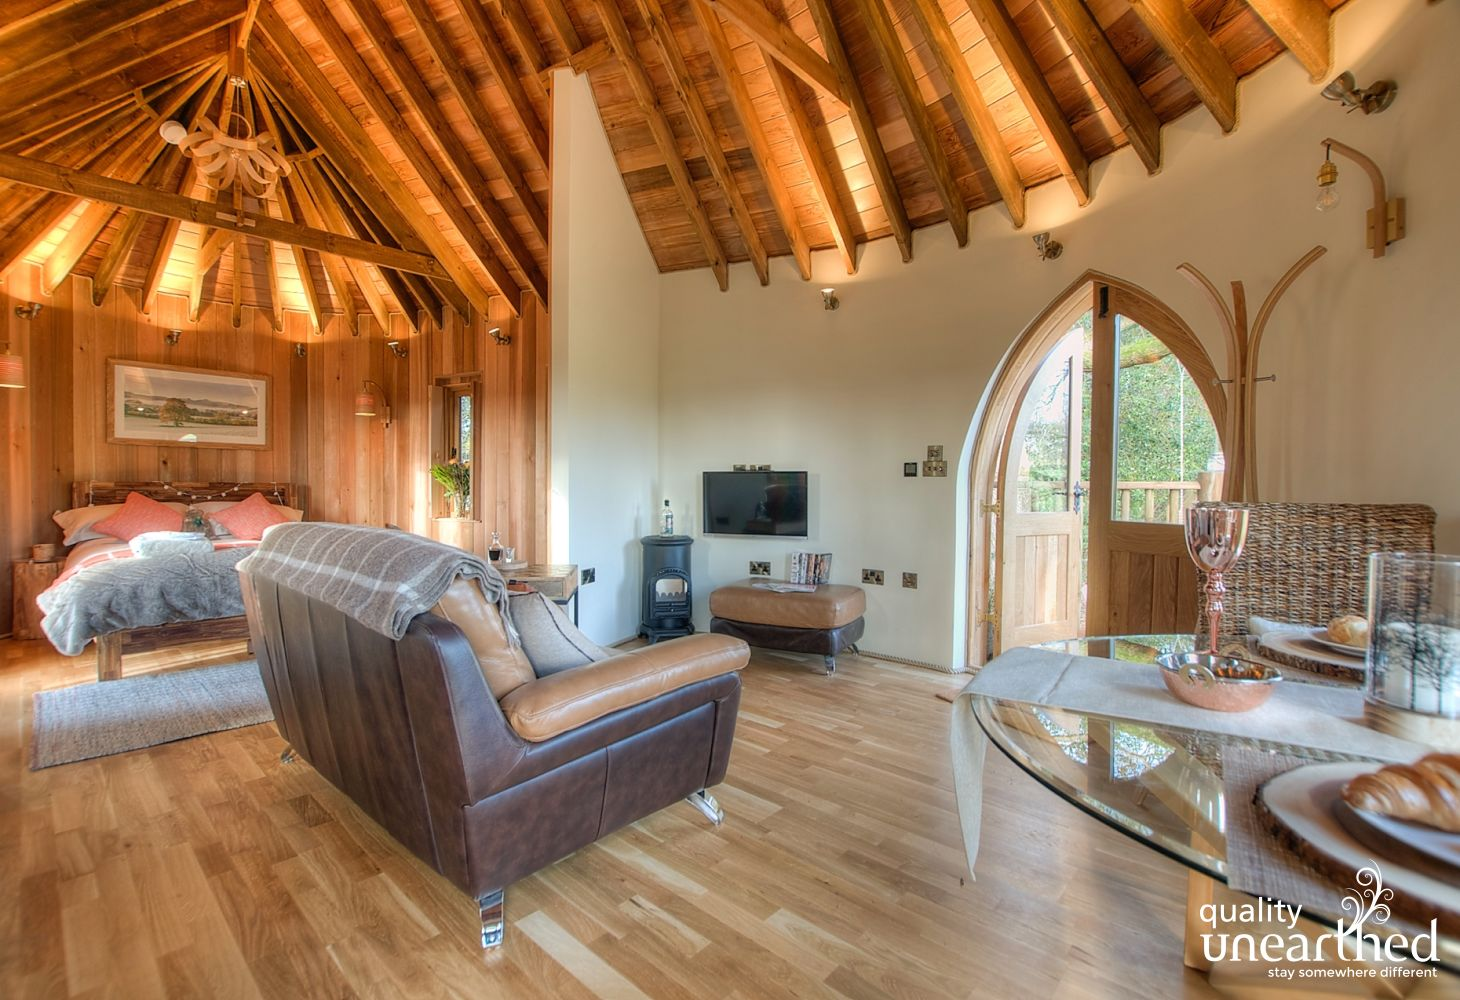 Wooden floors under the open wooden beams of the treehouse. We see the double bed, sofa for 2 and dining table